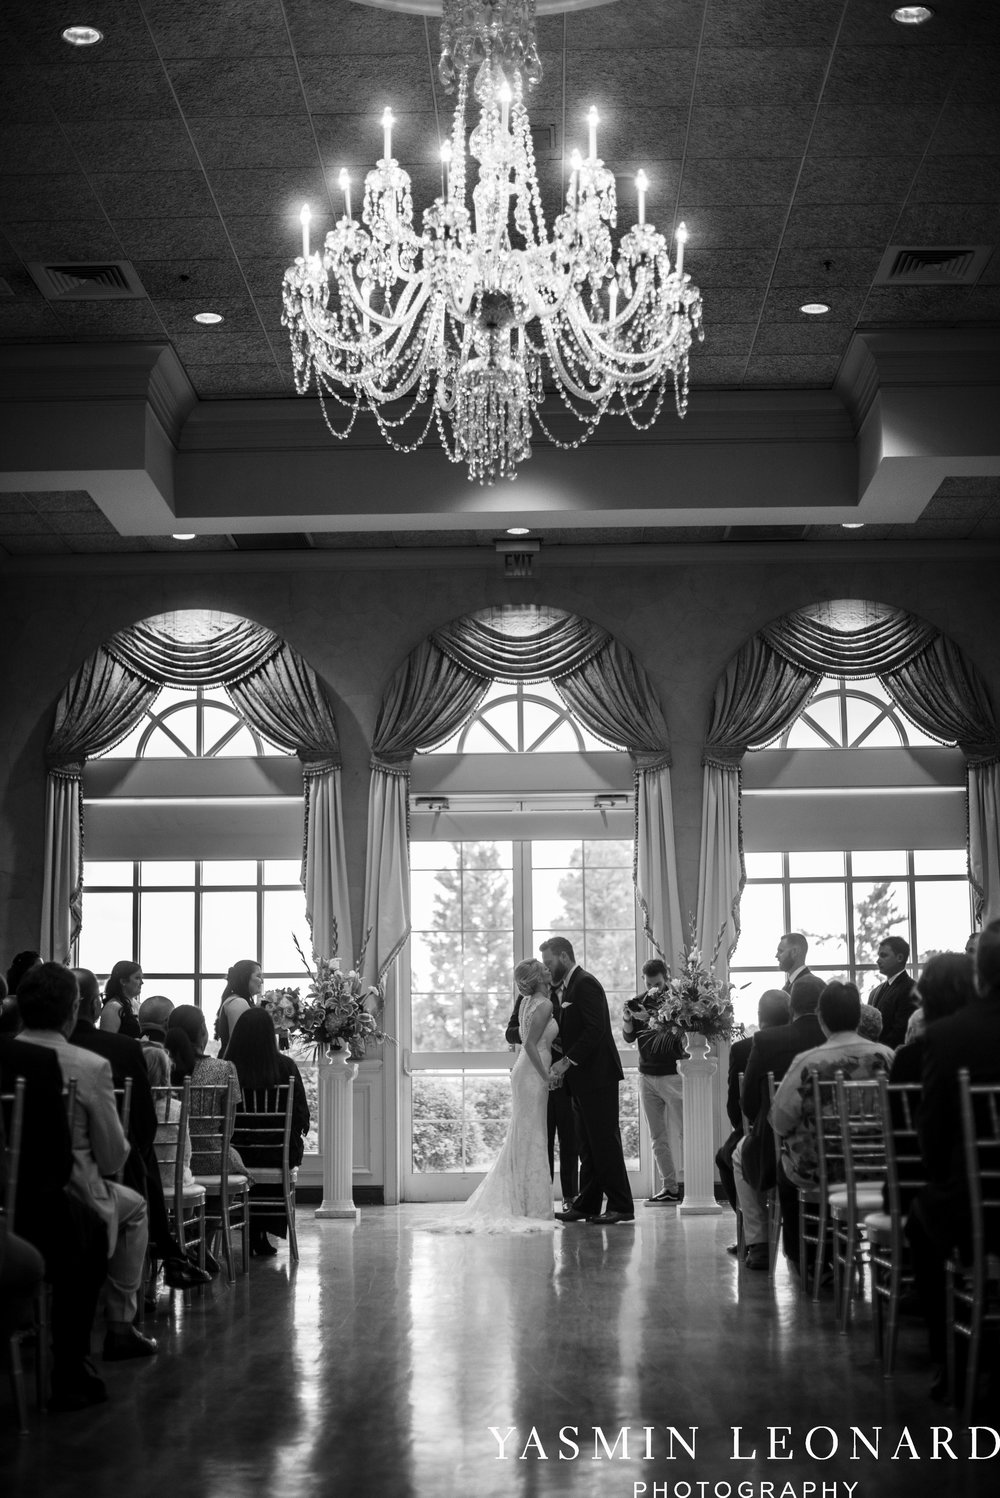 High Point Country Club - High Point Weddings - Emerywood Country Club - High Point Wedding Venues - NC Venues - NC Weddings - NC Wedding Photographers - Yasmin Leonard Photography-34.jpg